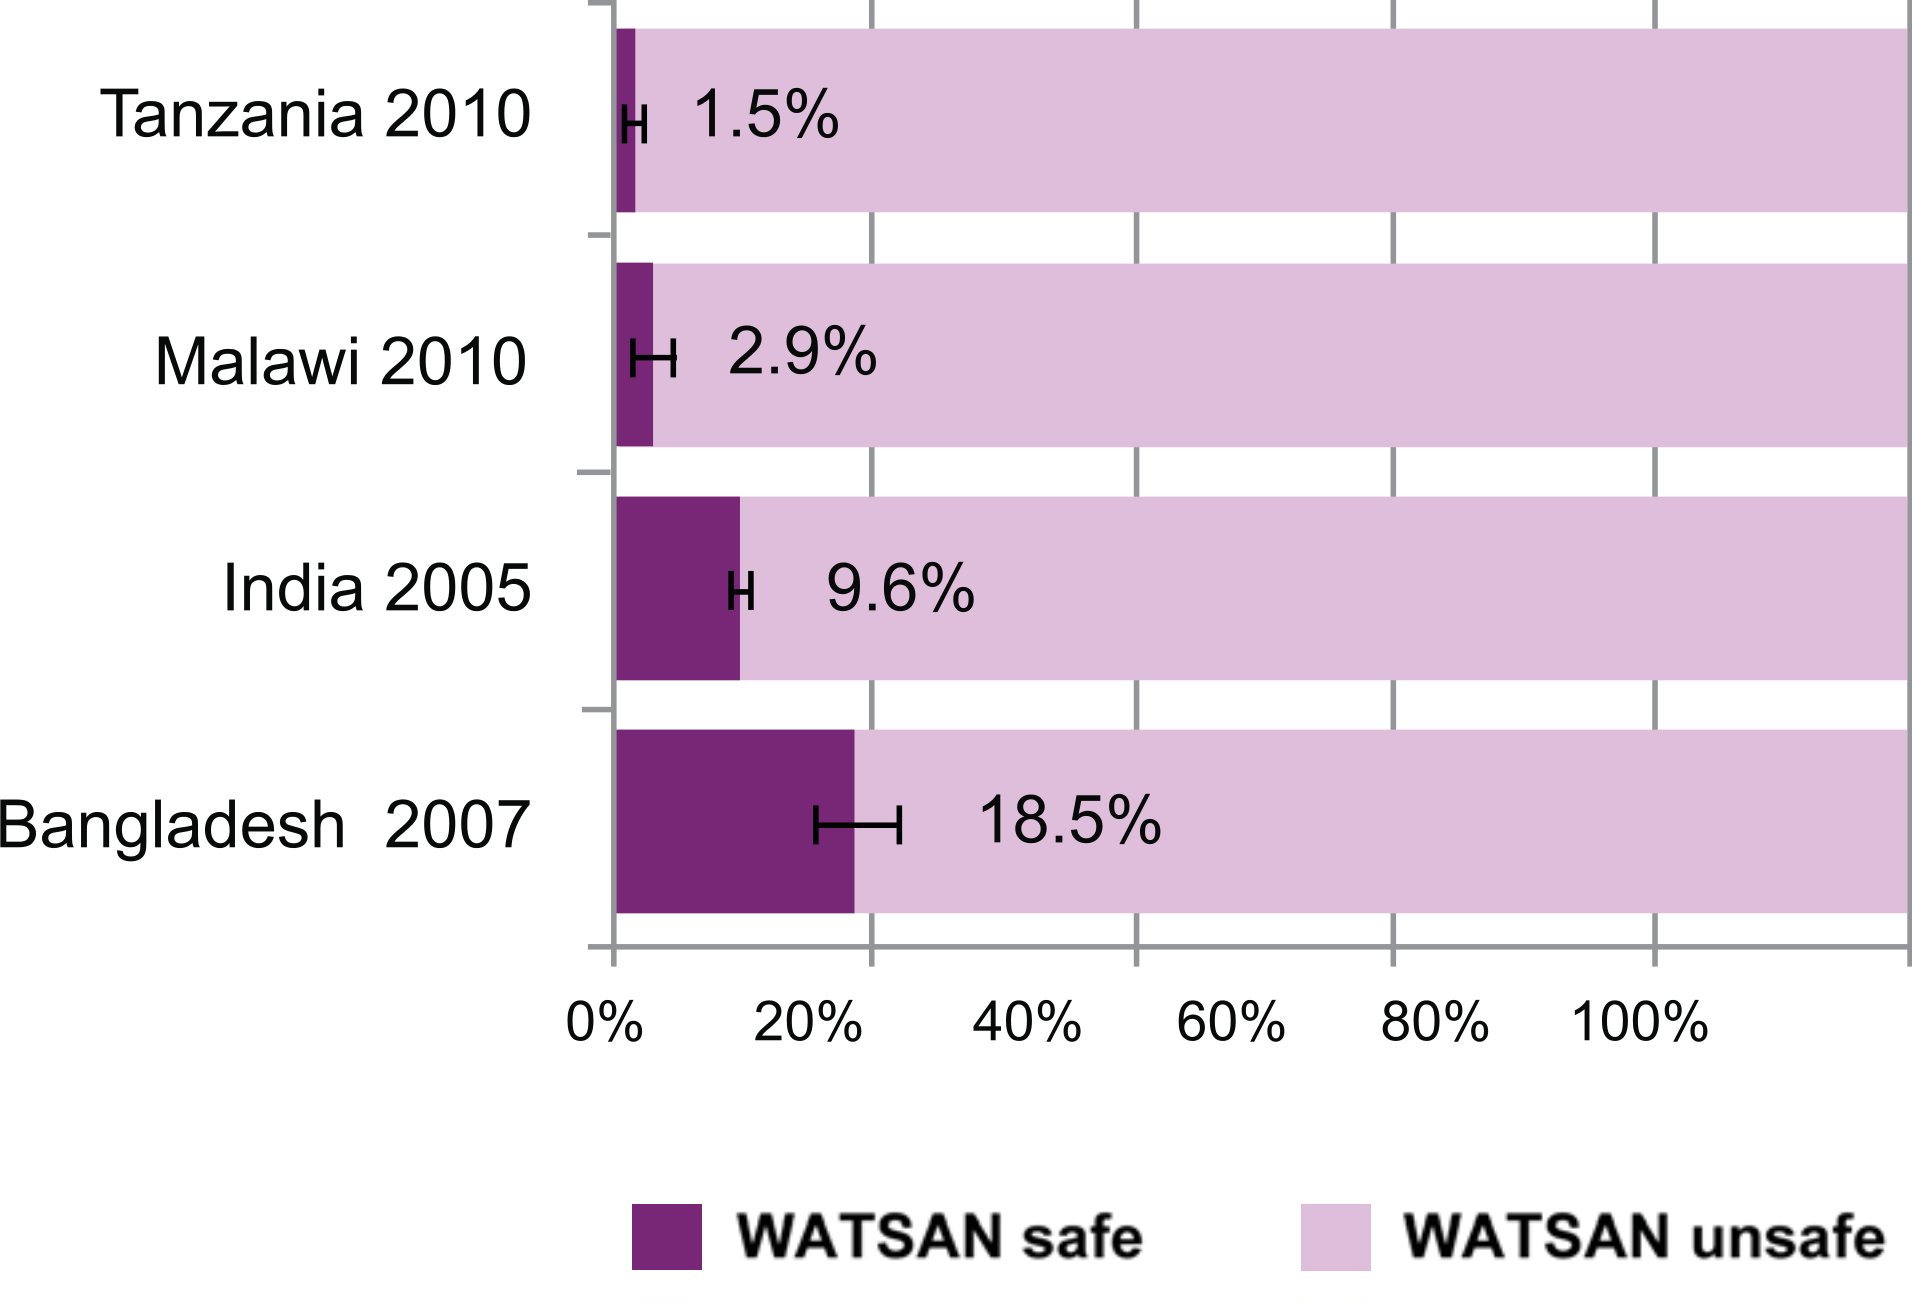 Proportions of births occurring in current household environments in the five years preceding the survey, by type of WATSAN environment.